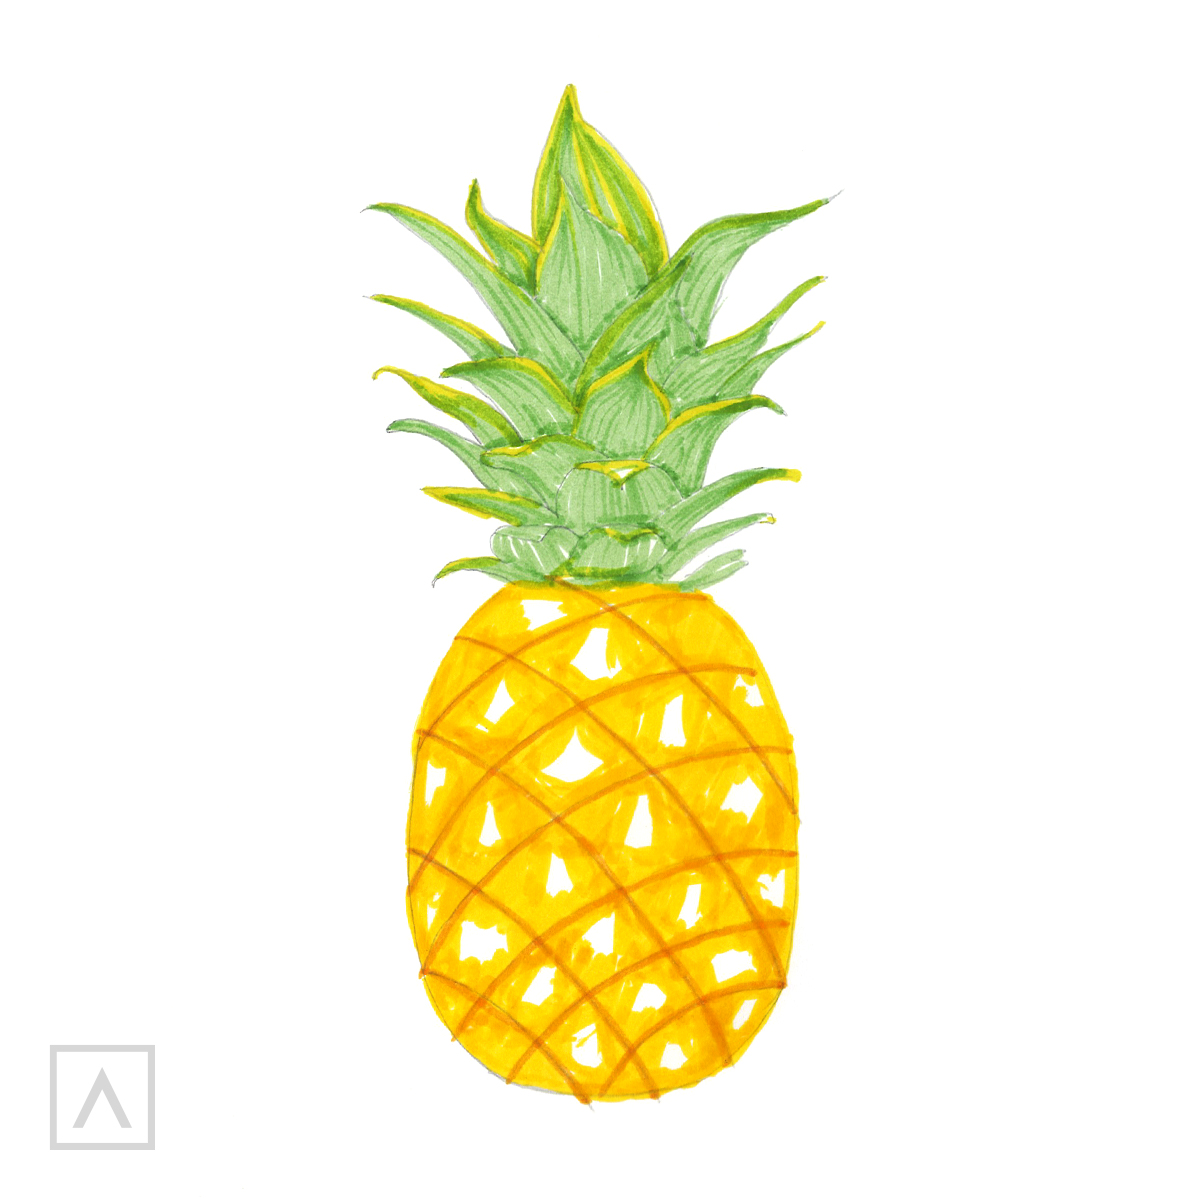 Pineapple drawing. Step 6